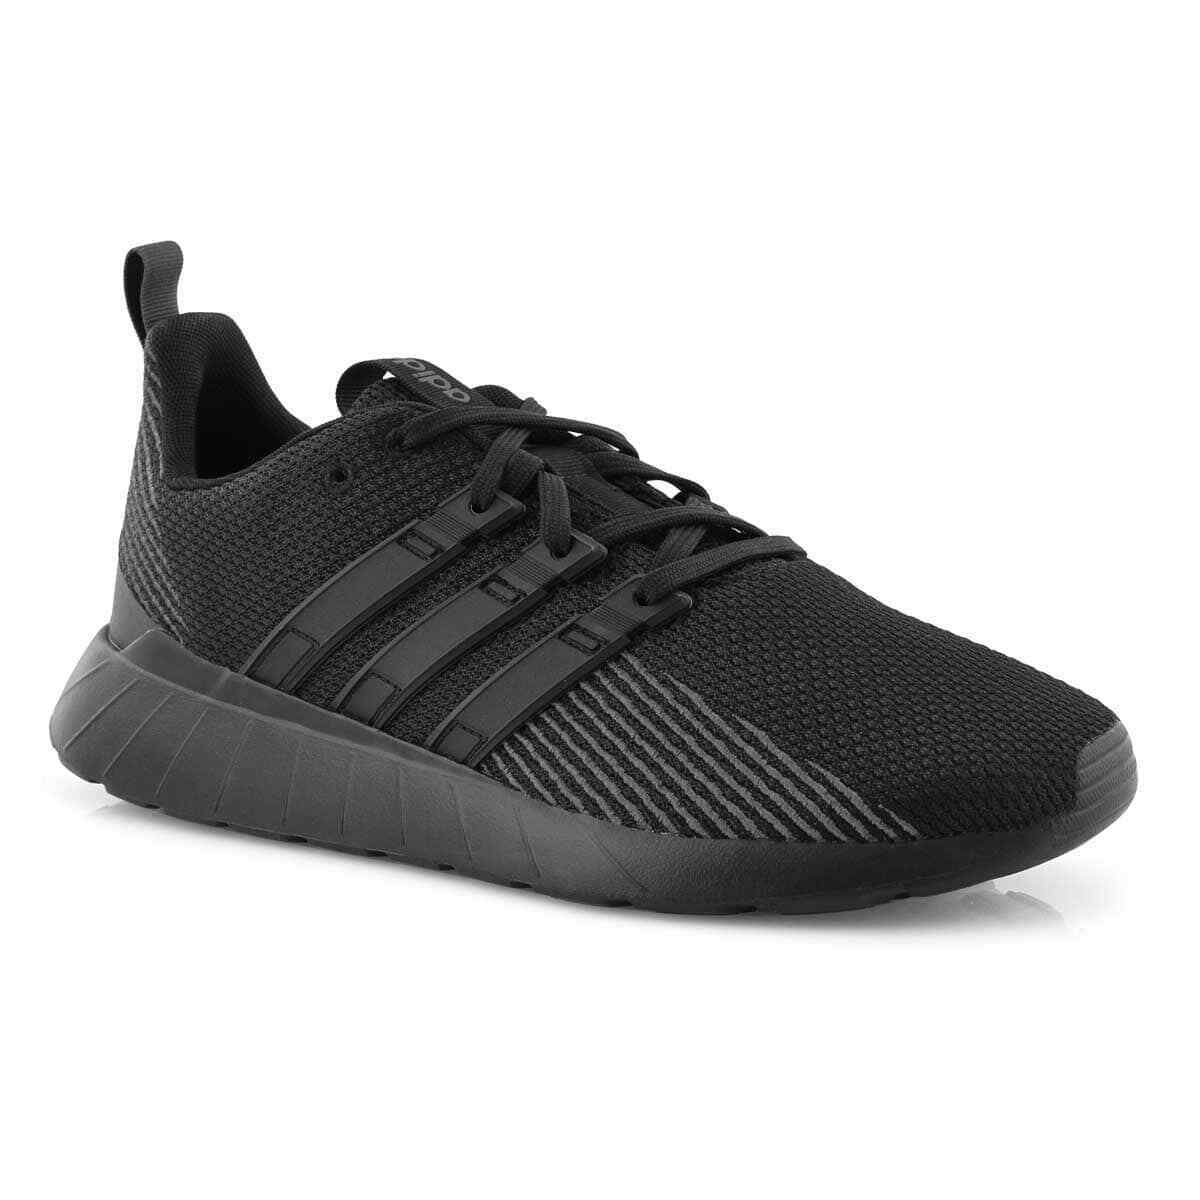 Adidas Men's Questar Flow Running shoes